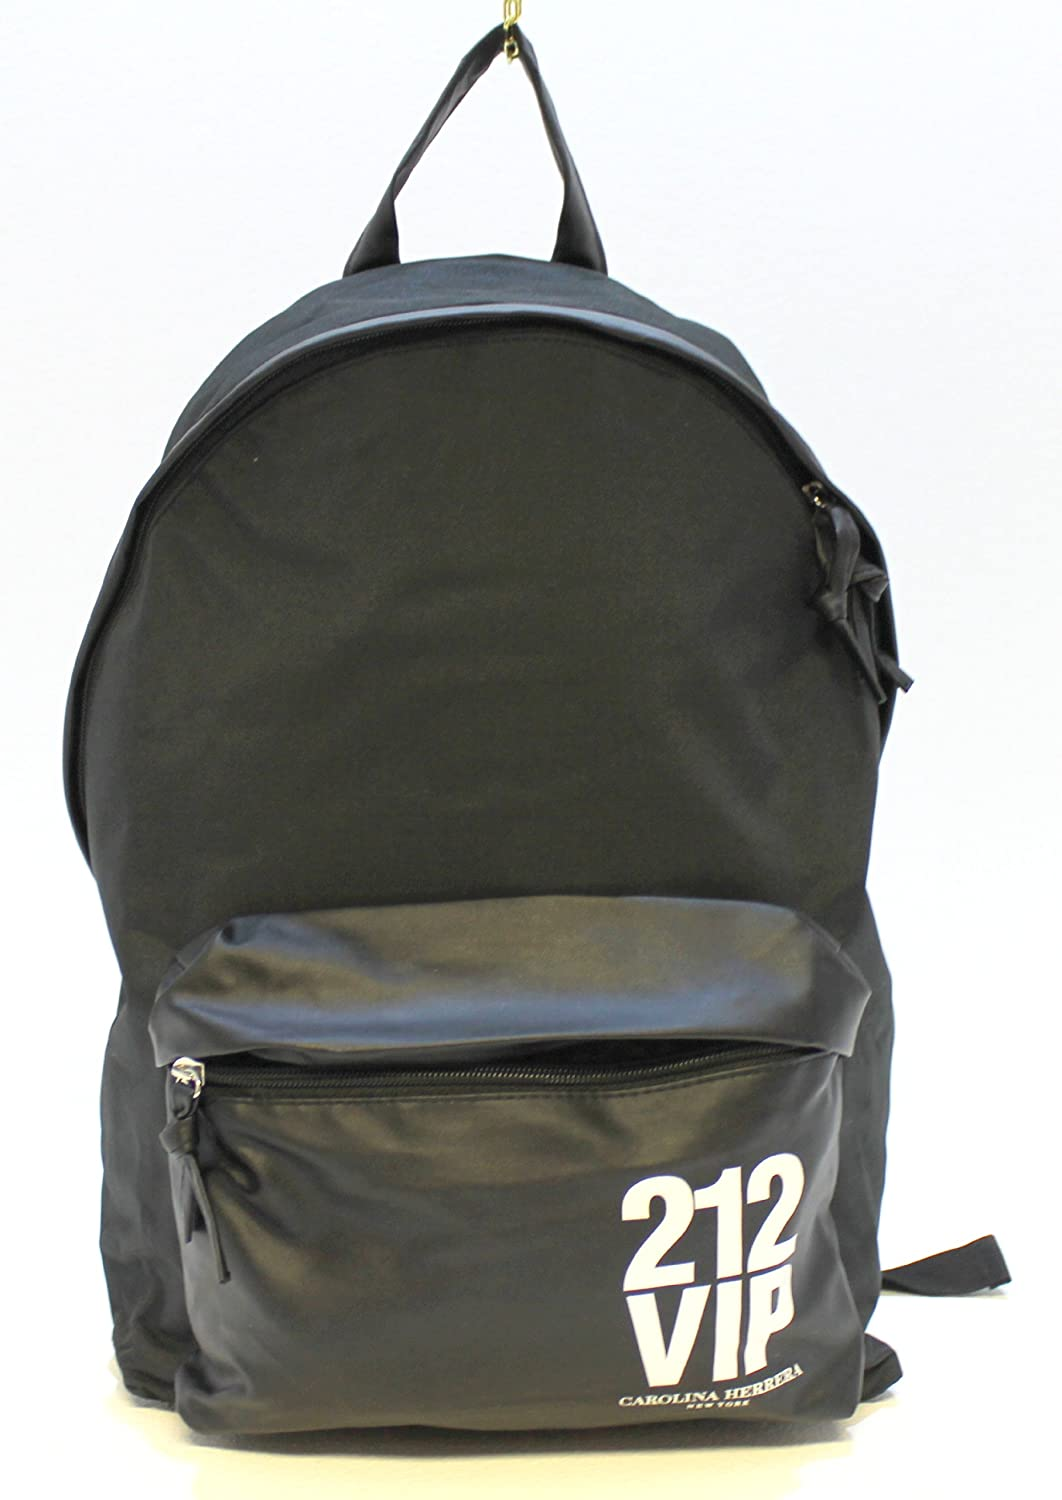 CAROLINA HERRERA 212 VIP NYC BACKPACK CARRY IT IN STYLE BLACK * NEW by Carolina Herrera: Amazon.es: Deportes y aire libre